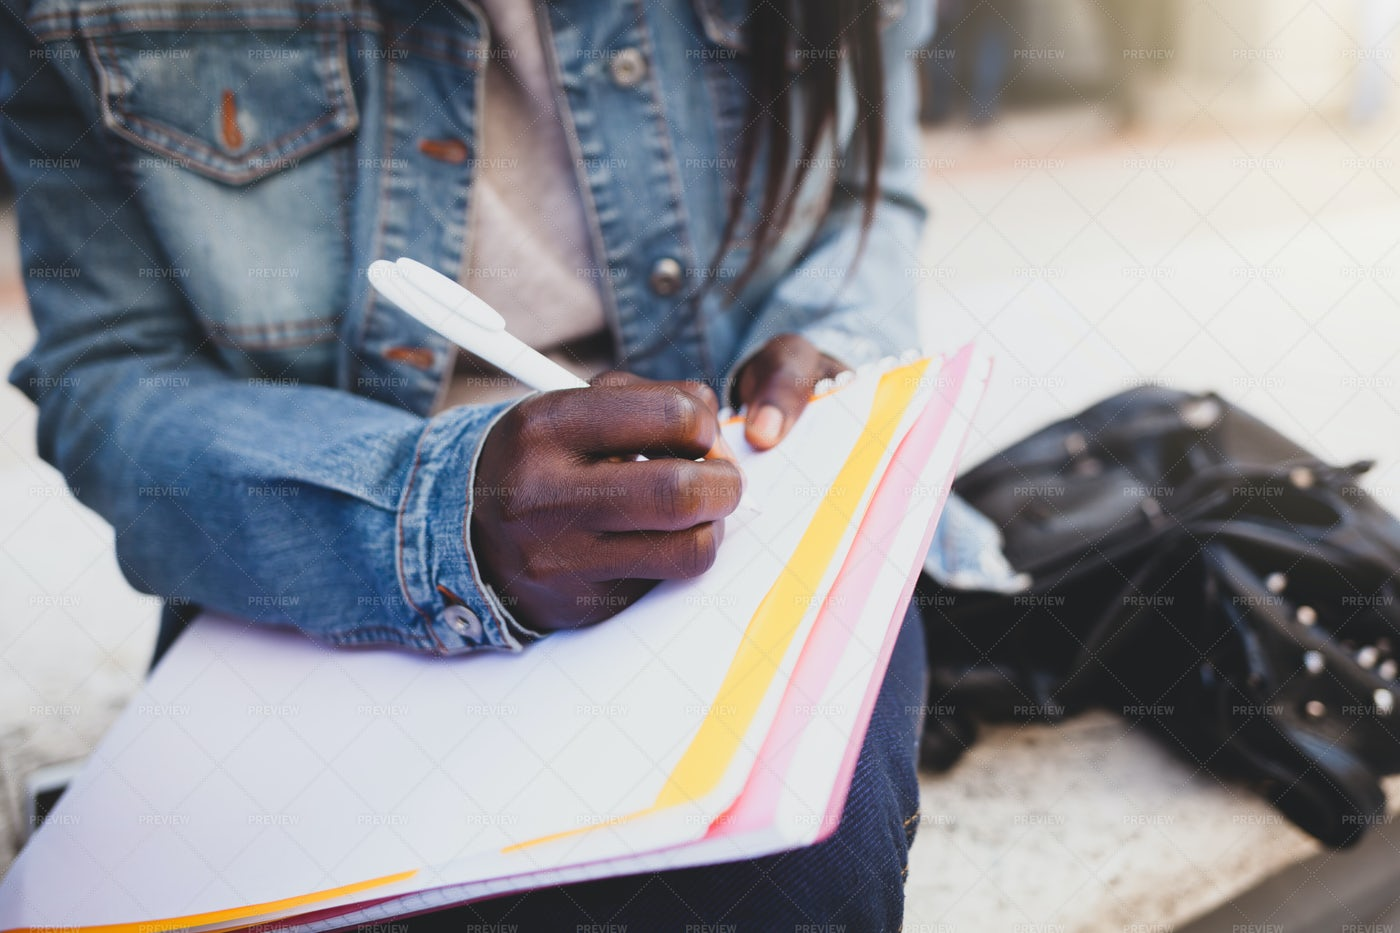 Writing Notes In A Notebook: Stock Photos